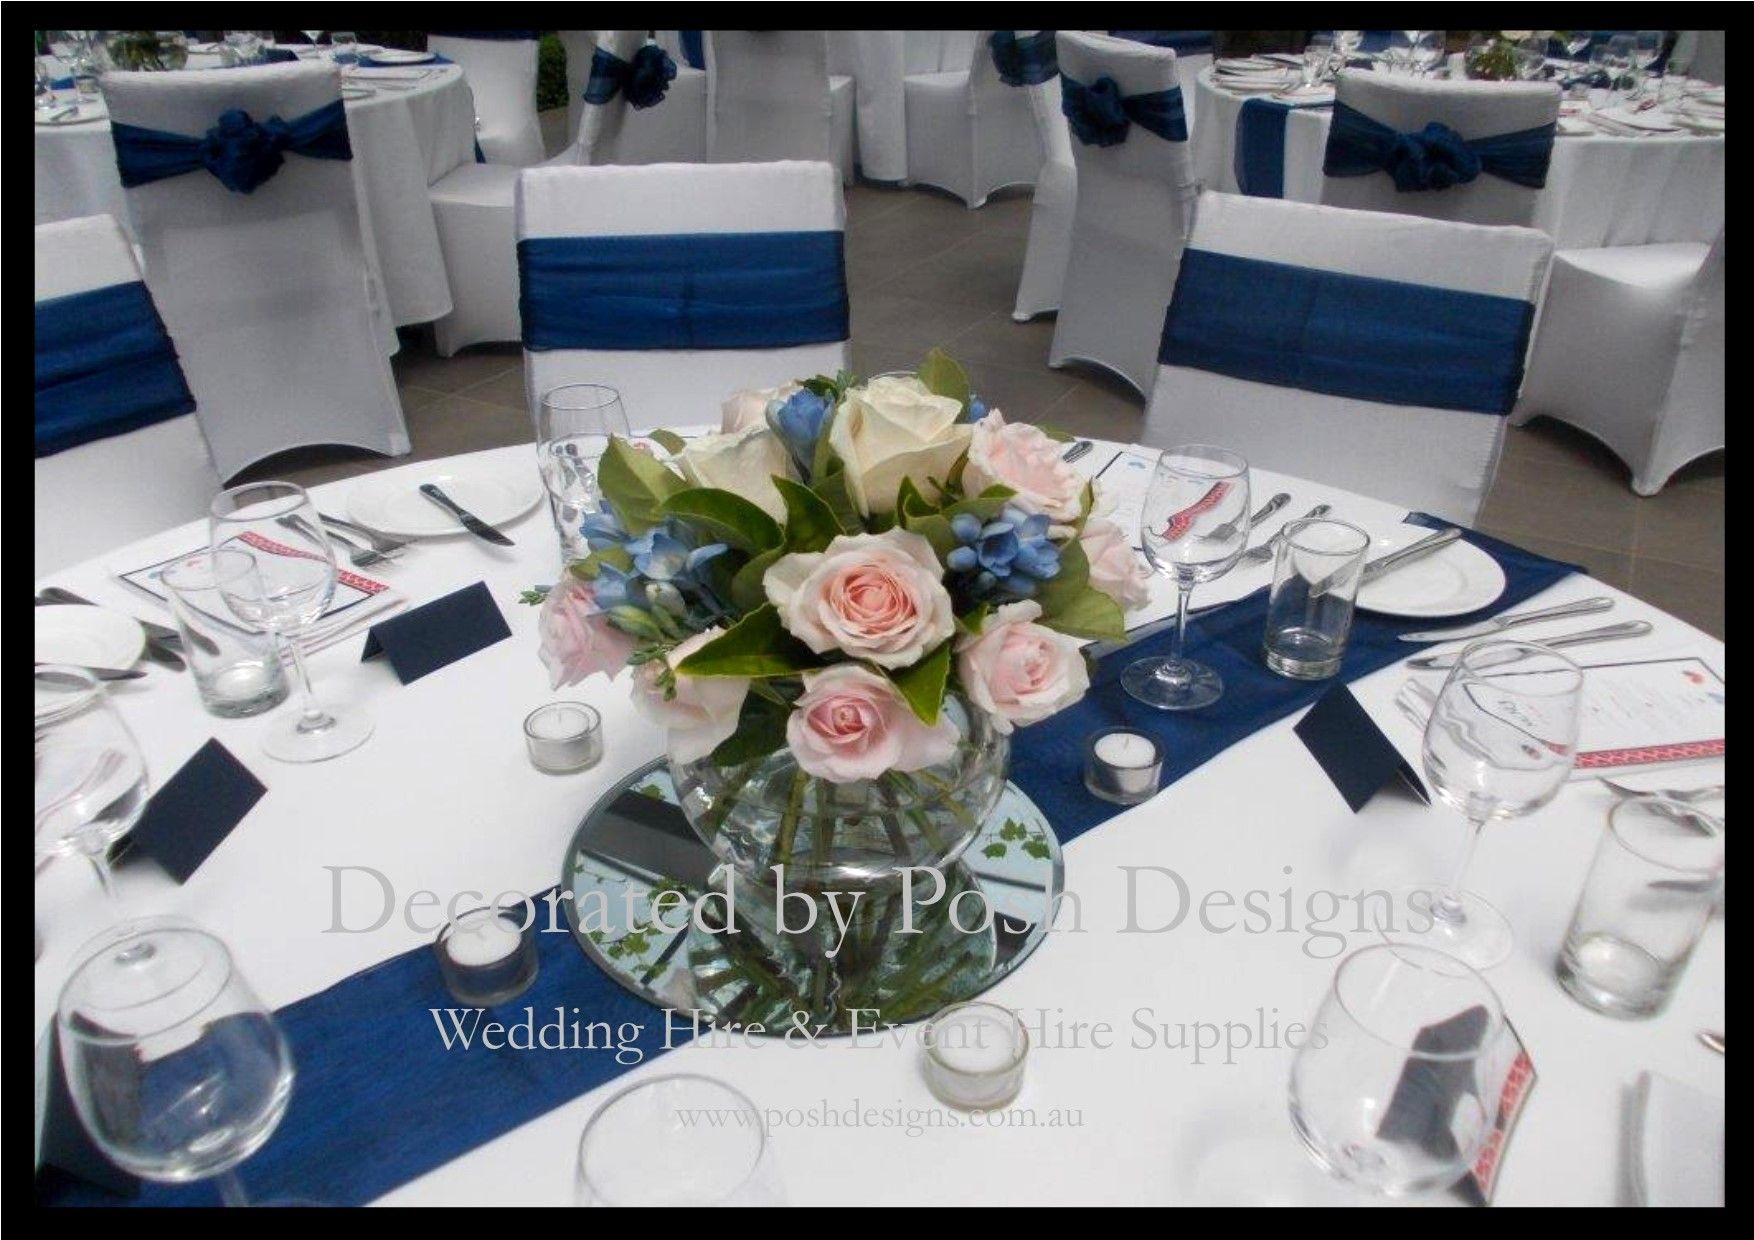 Blue And White Wedding Theme Decorations For Hire